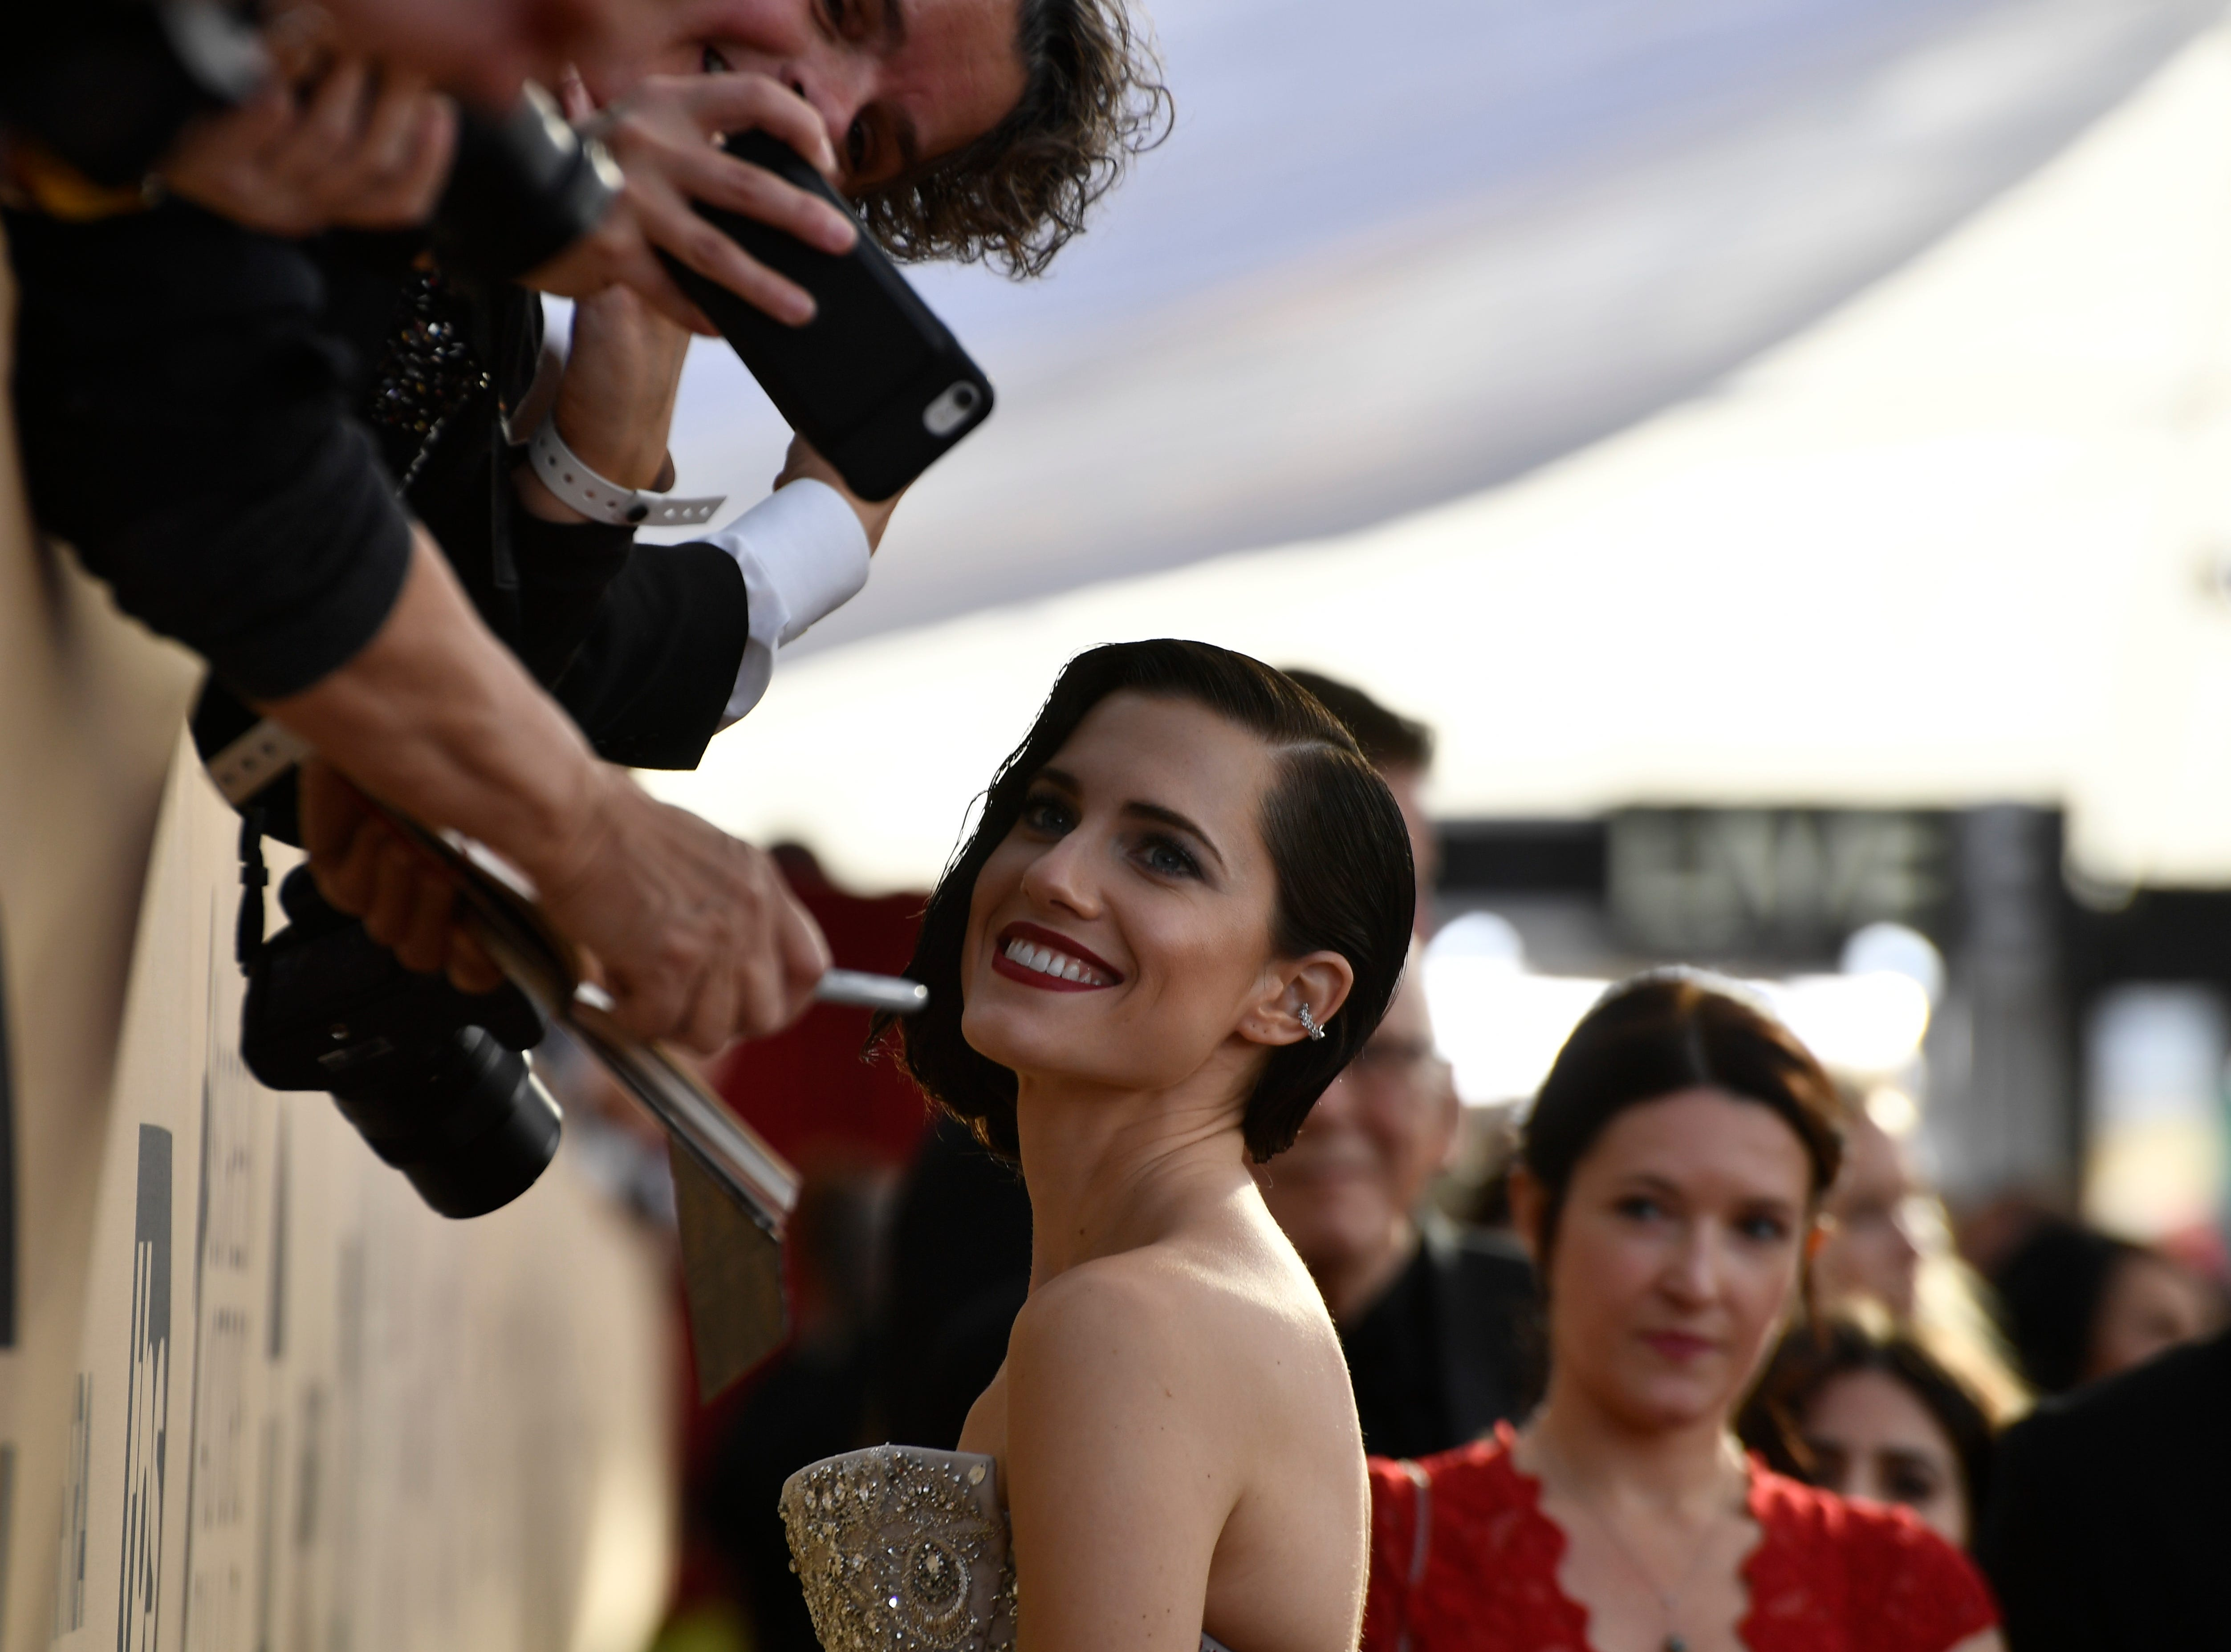 Jan. 21, 2018: Allison Williams poses with fans at the 24th Annual Screen Actors Guild Awards at the Shrine Auditorium in Los Angeles.